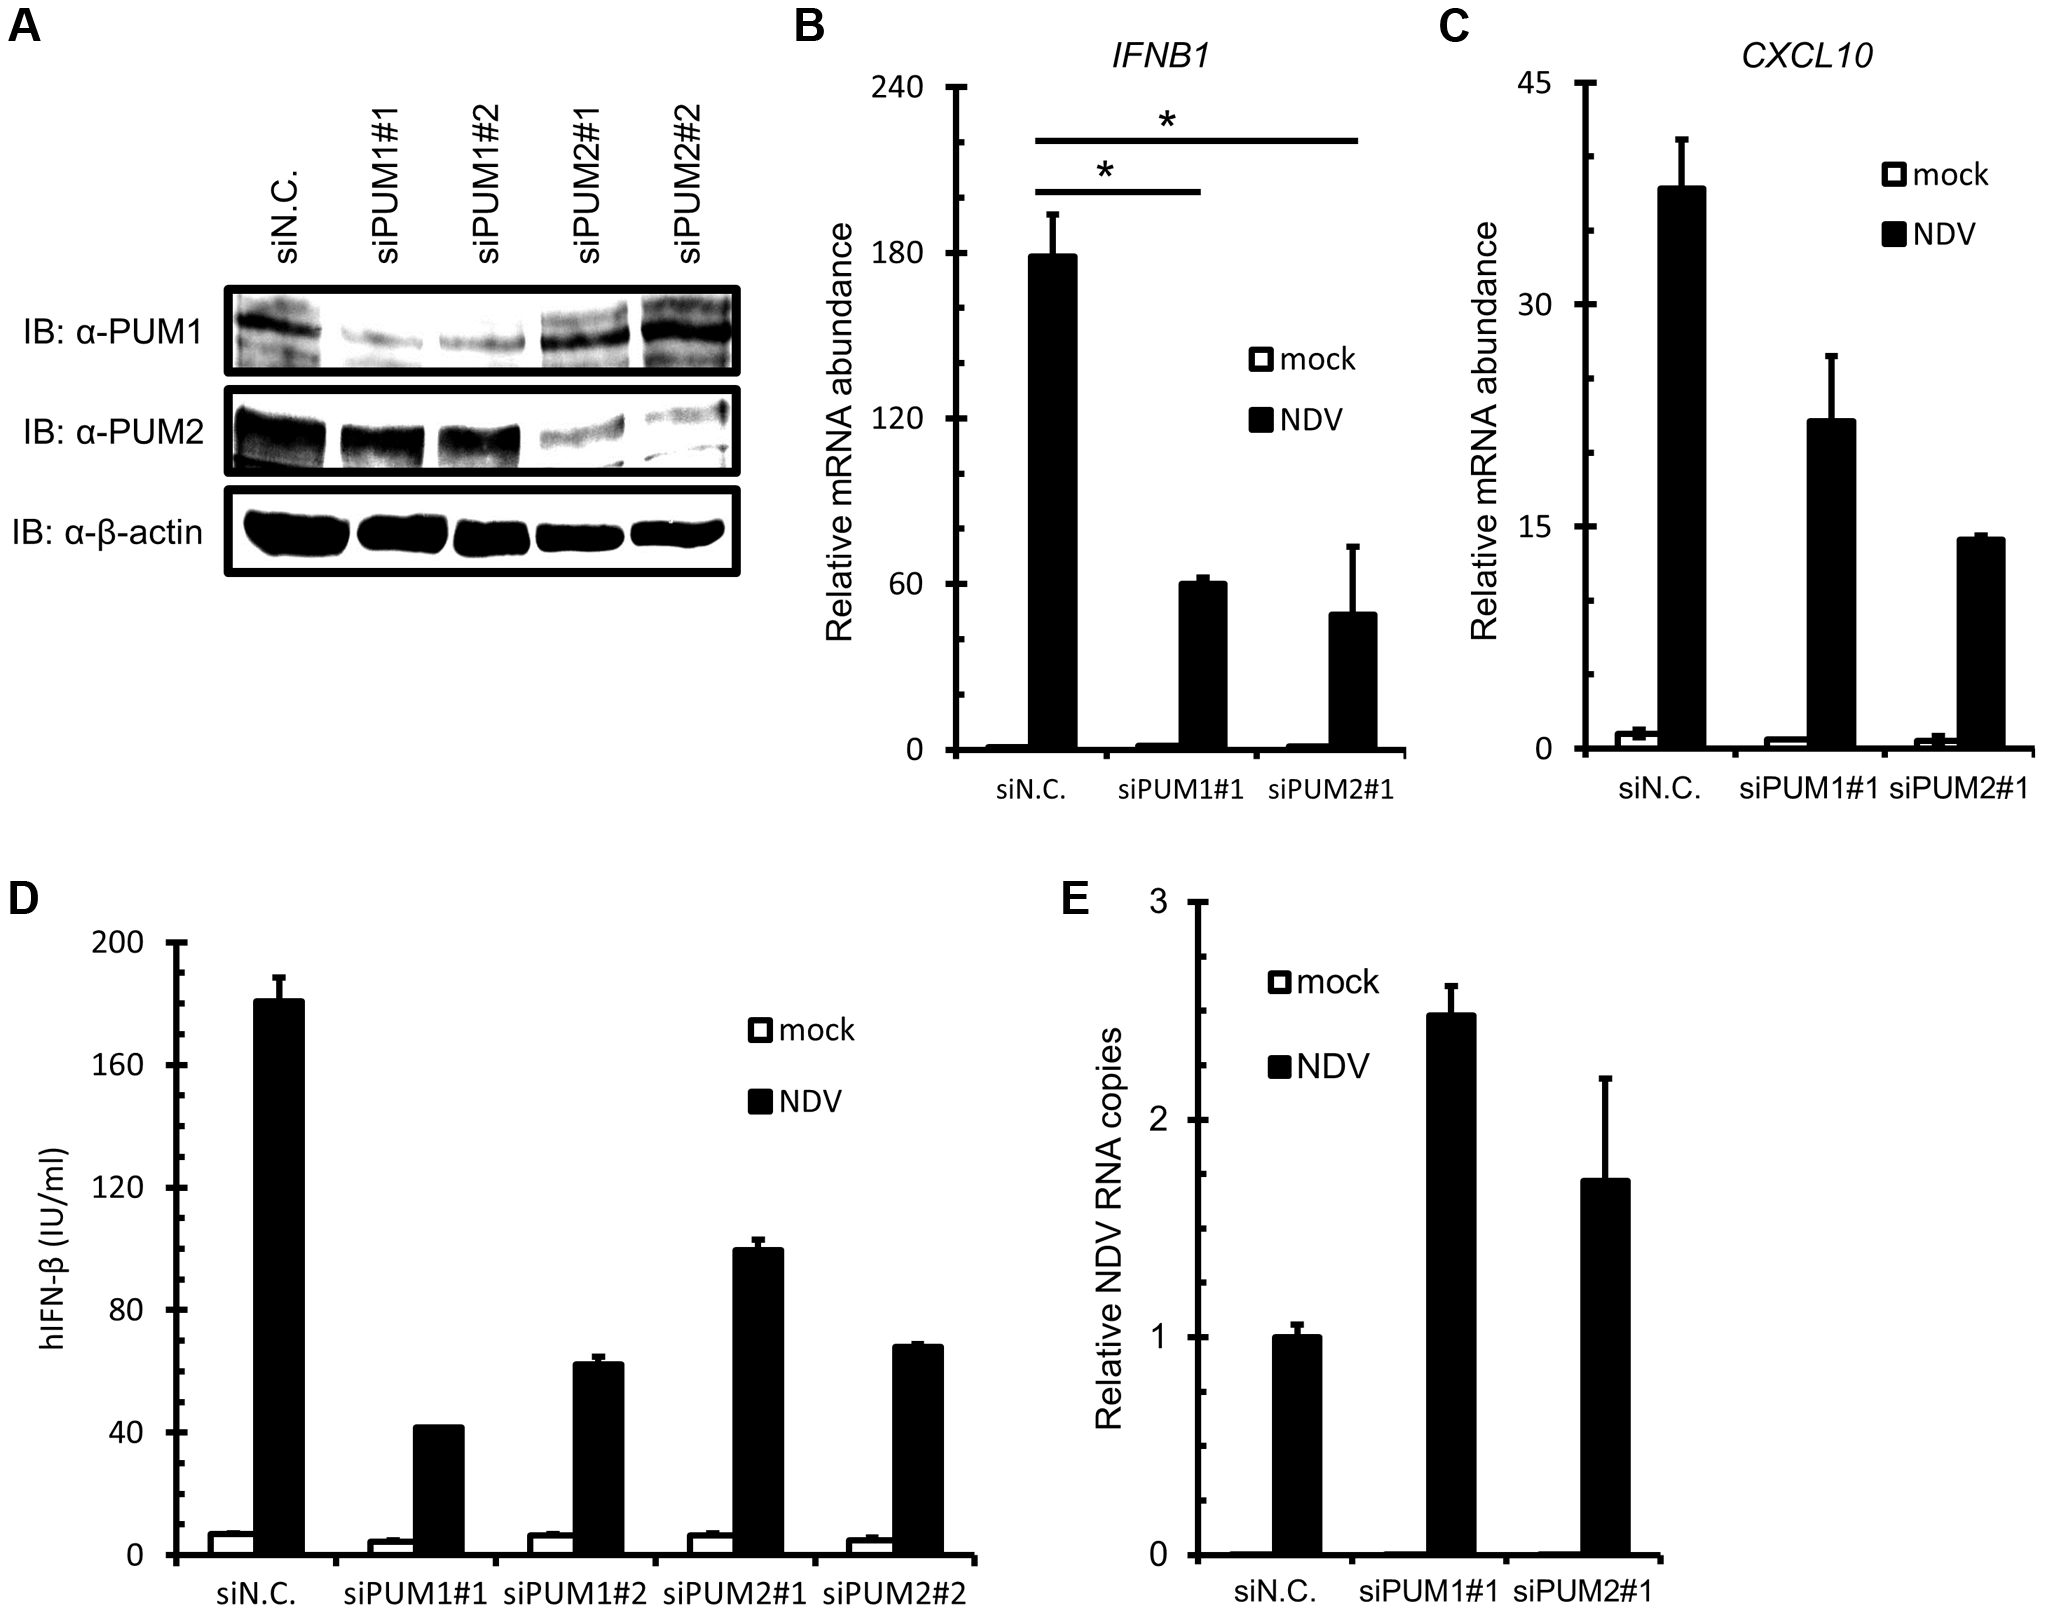 Knockdown of PUM1 and PUM2 downregulates NDV-induced gene activation.